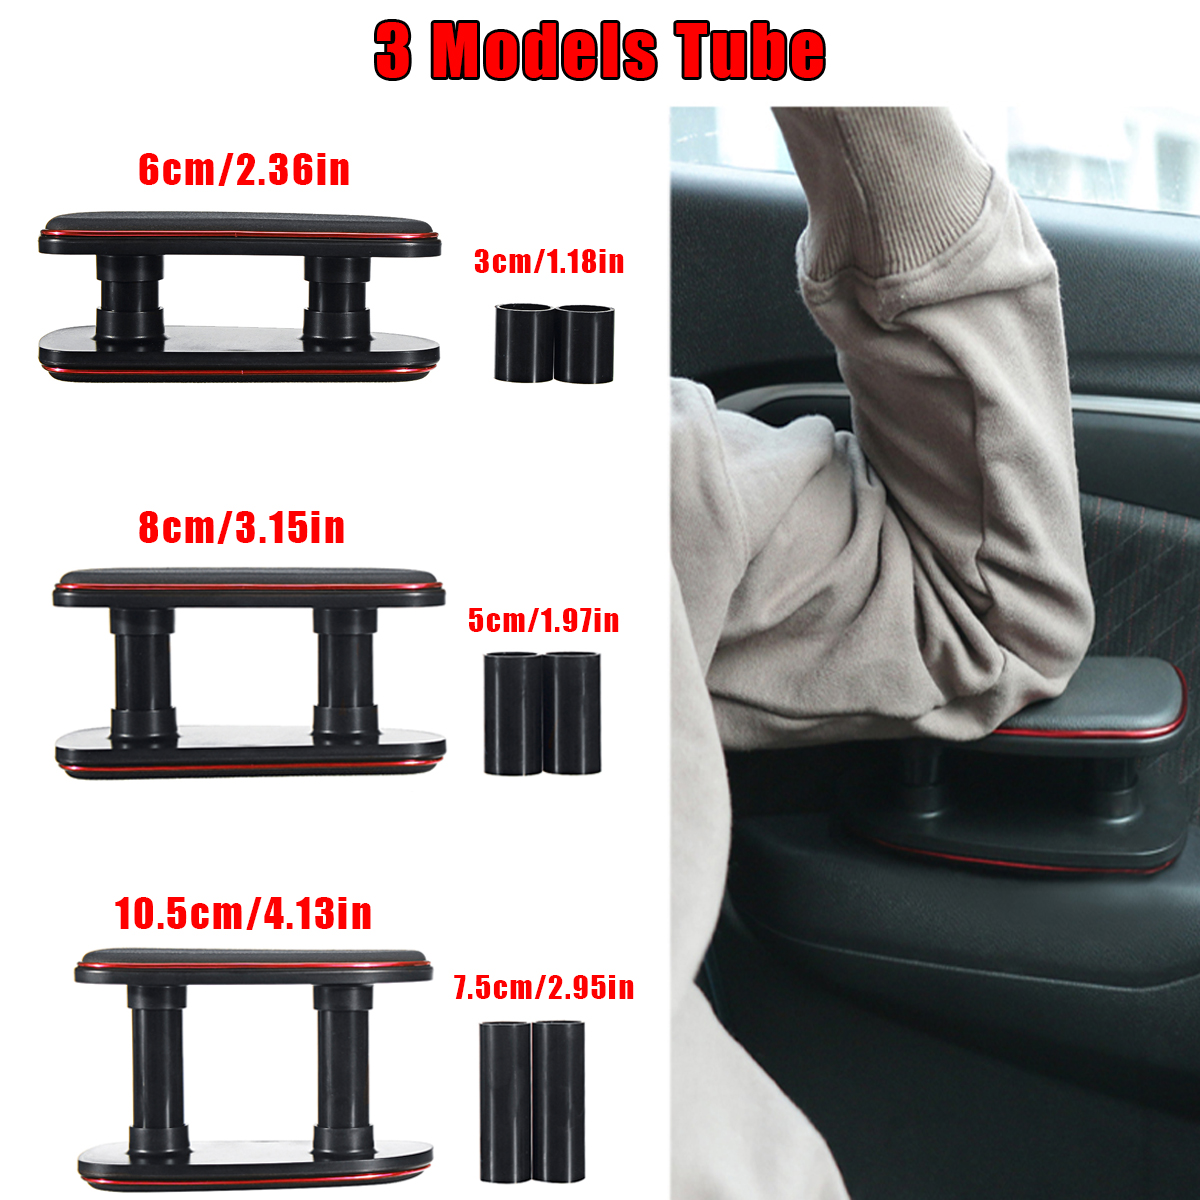 Universal Driving Anti Fatigue Adjustment Car Left Hand Armrest 3 Models Tube Elbow Silicone Pad Support Bracket